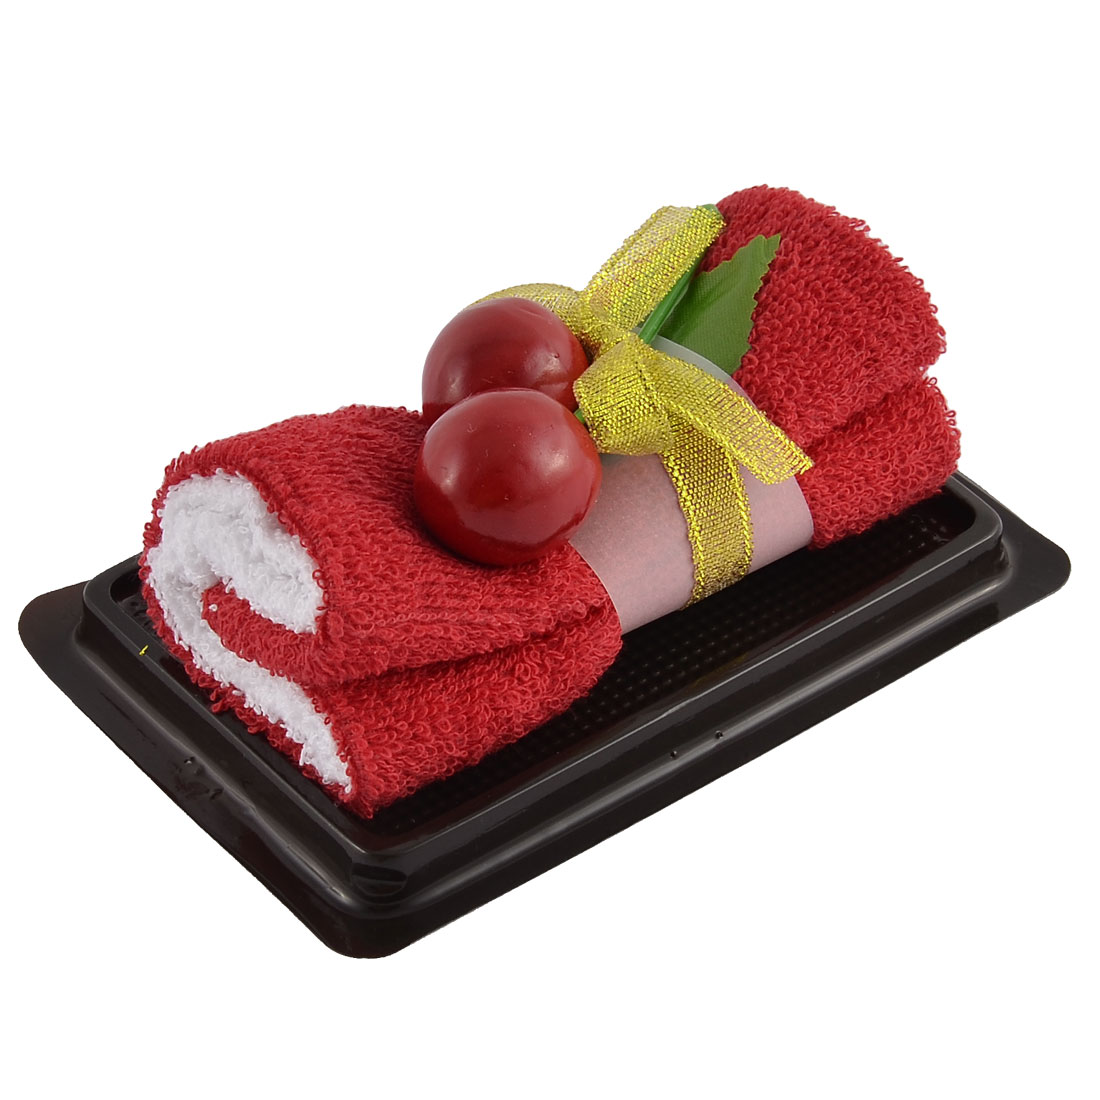 Simulated Cherry Leaf Detail Roll Cake Towel Facecloth Washcloth Decor Gift Red